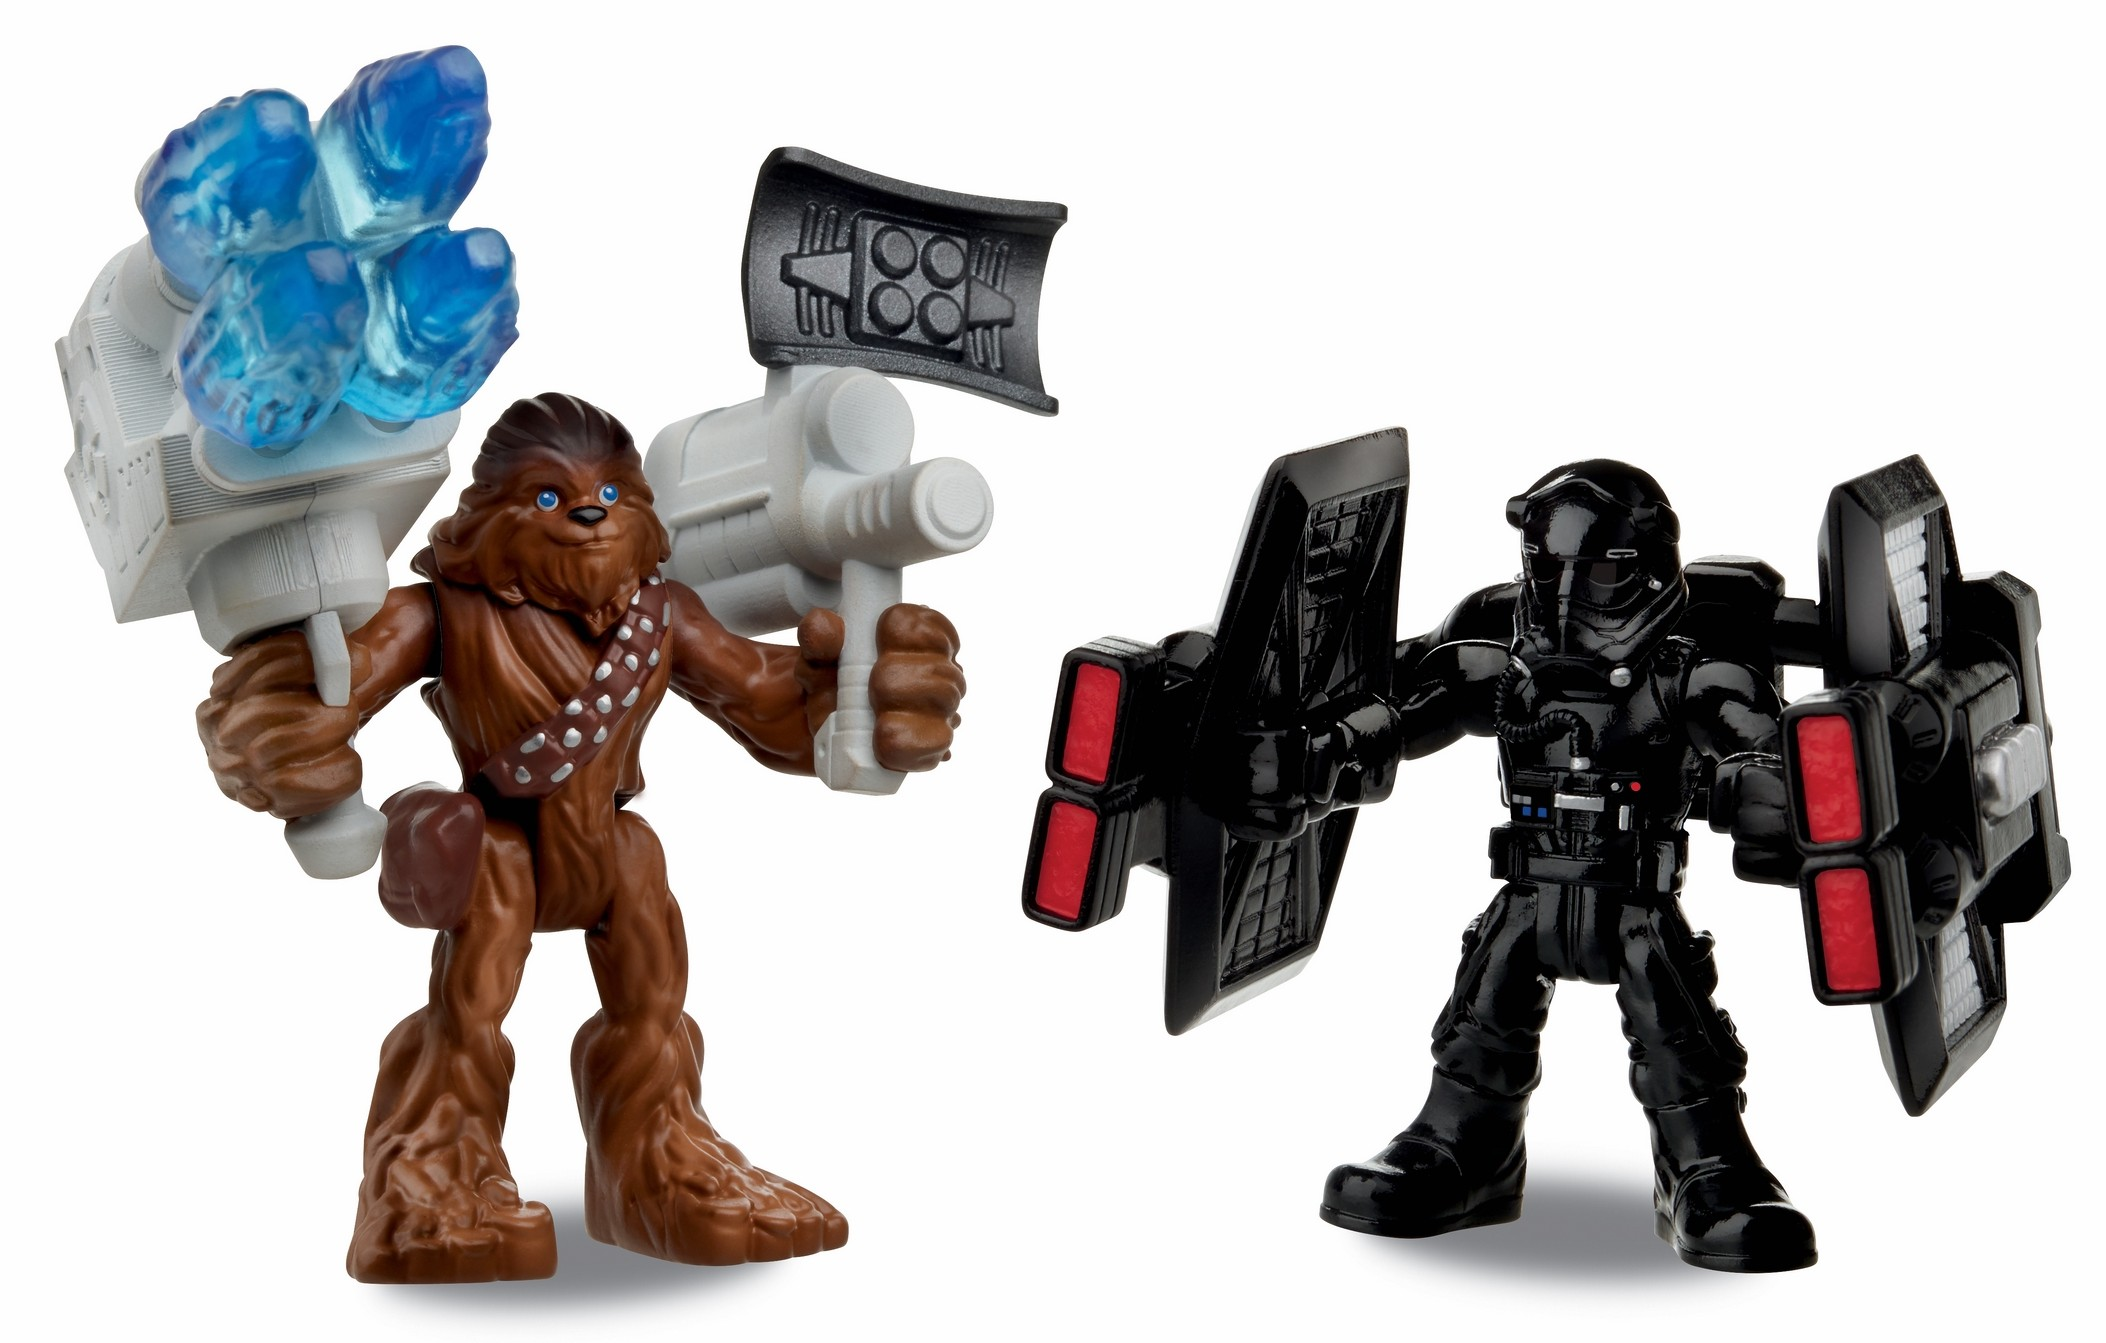 Force Awakens PlaySkool Galactic Heroes Chewbacca and First Order Tie Fighter Pilot figure 2-pack